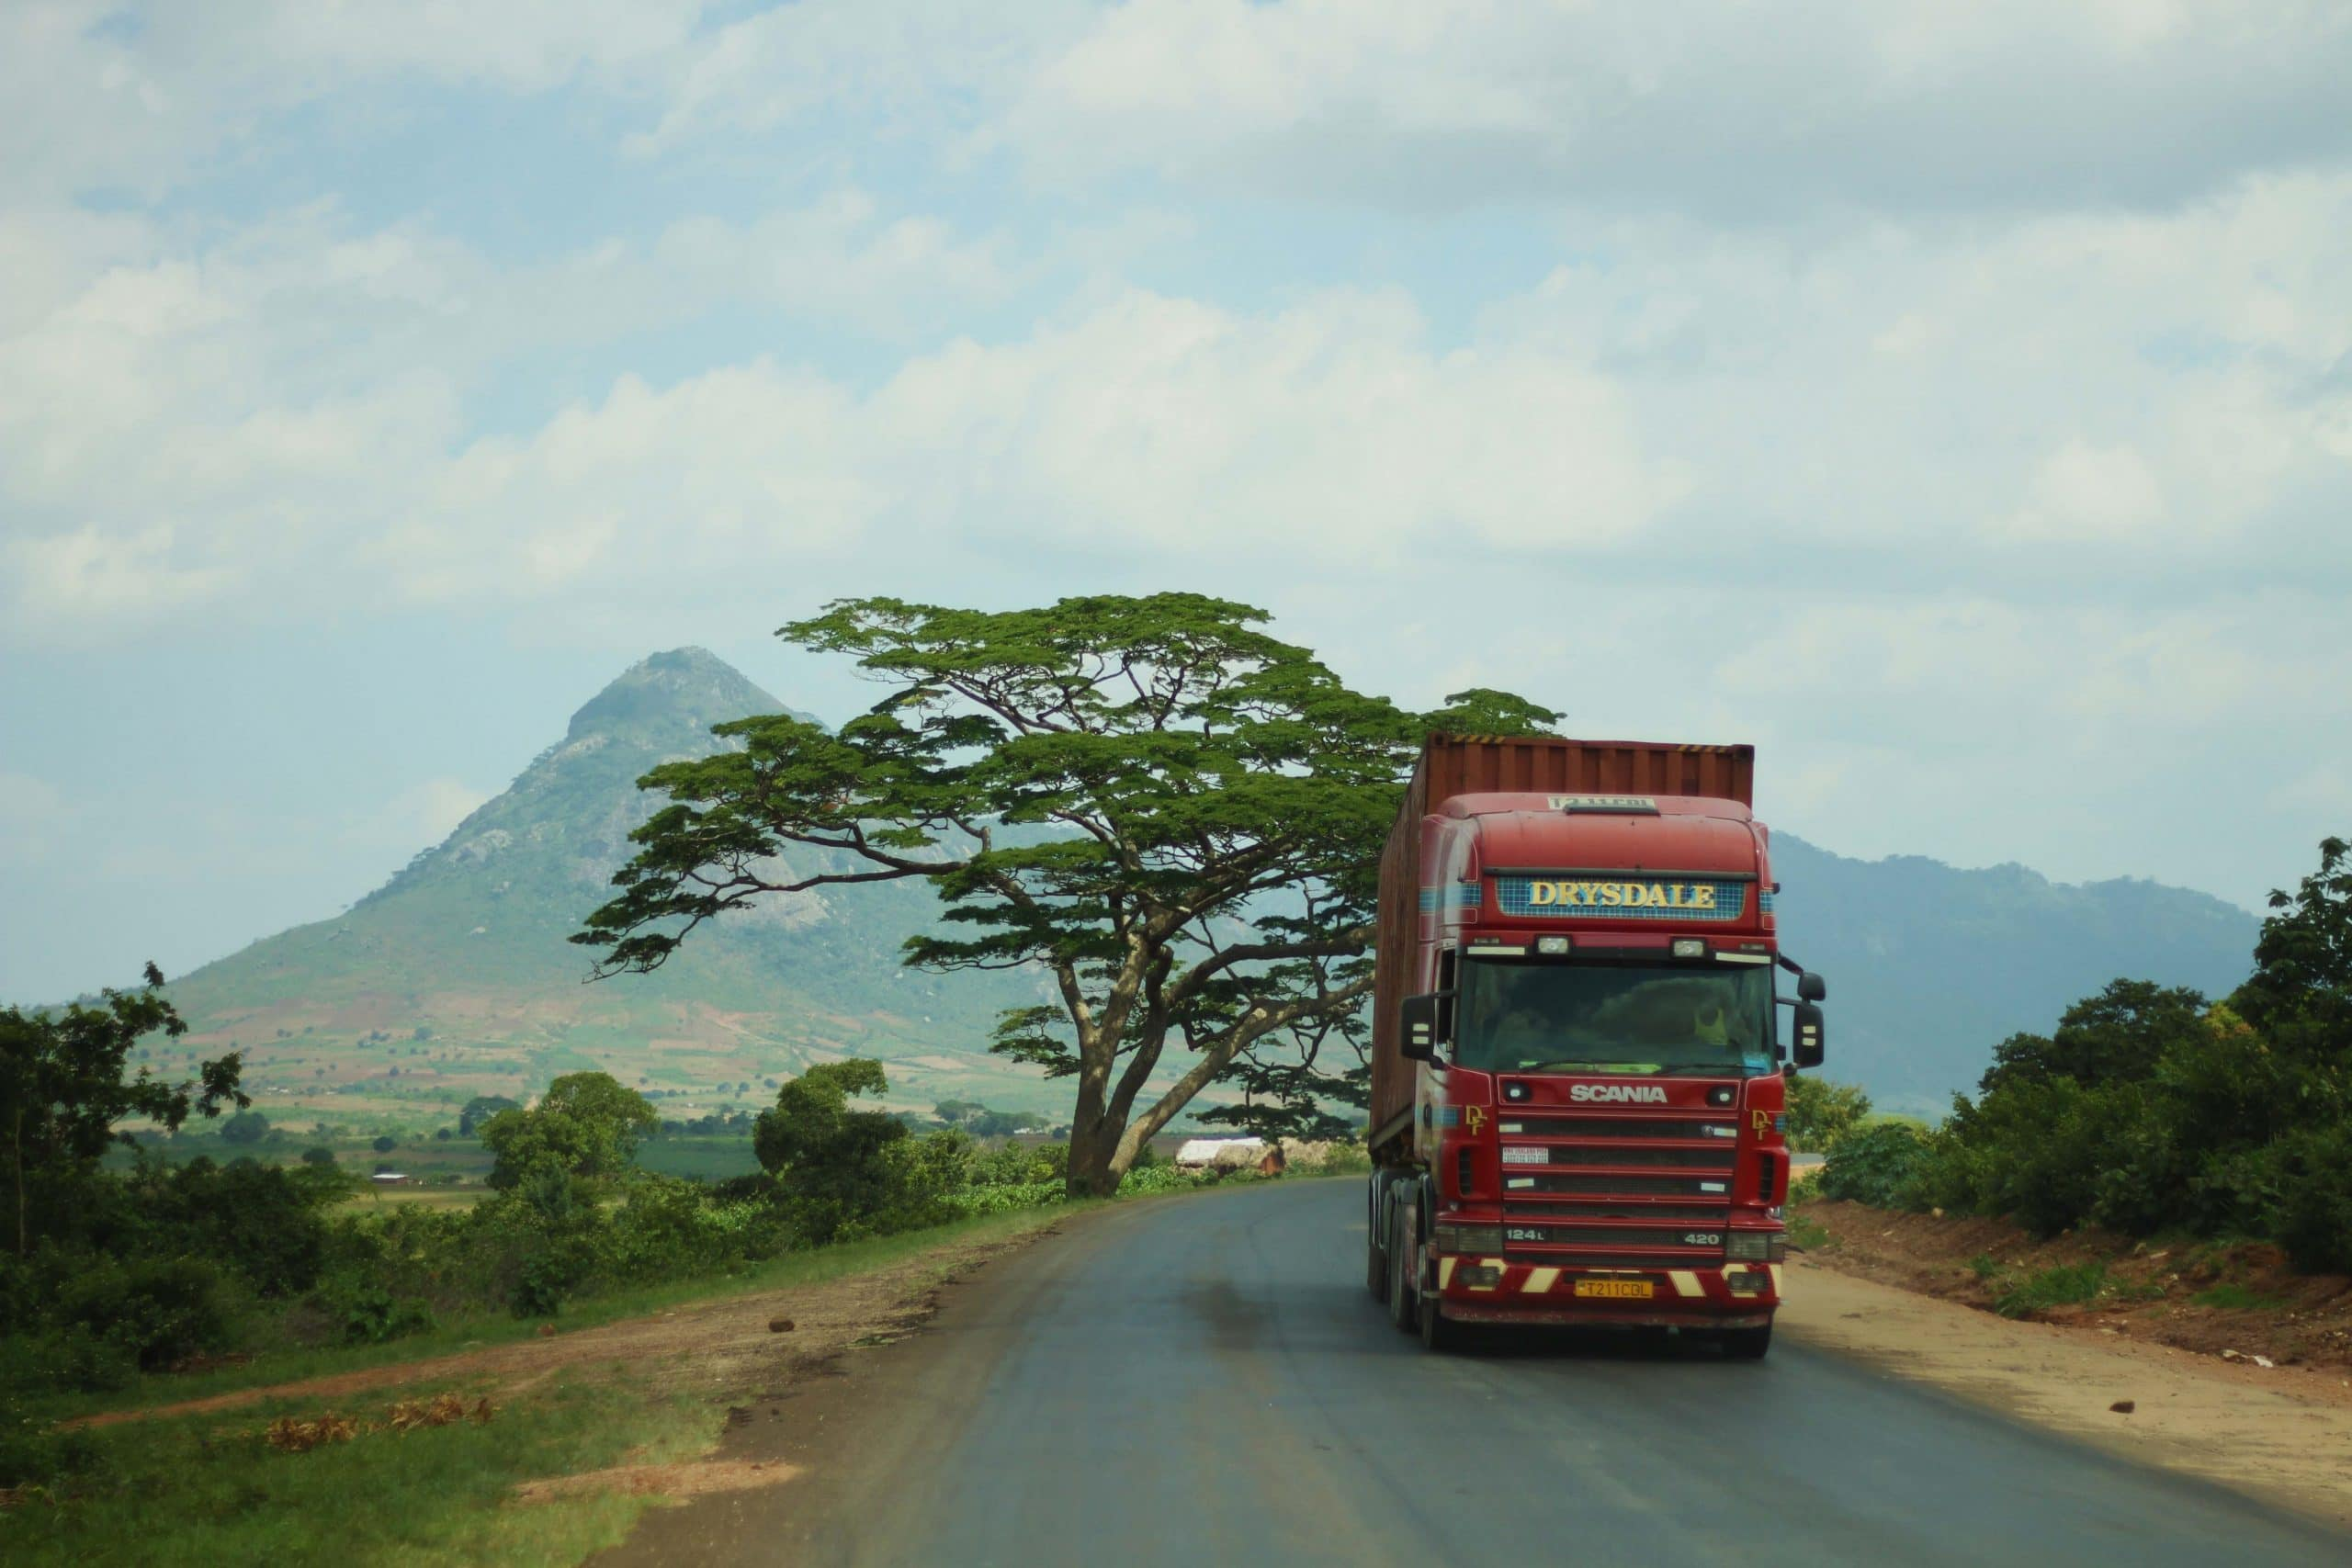 Market Analysis and Intervention Programme for East Africa Freight Logistic Chains